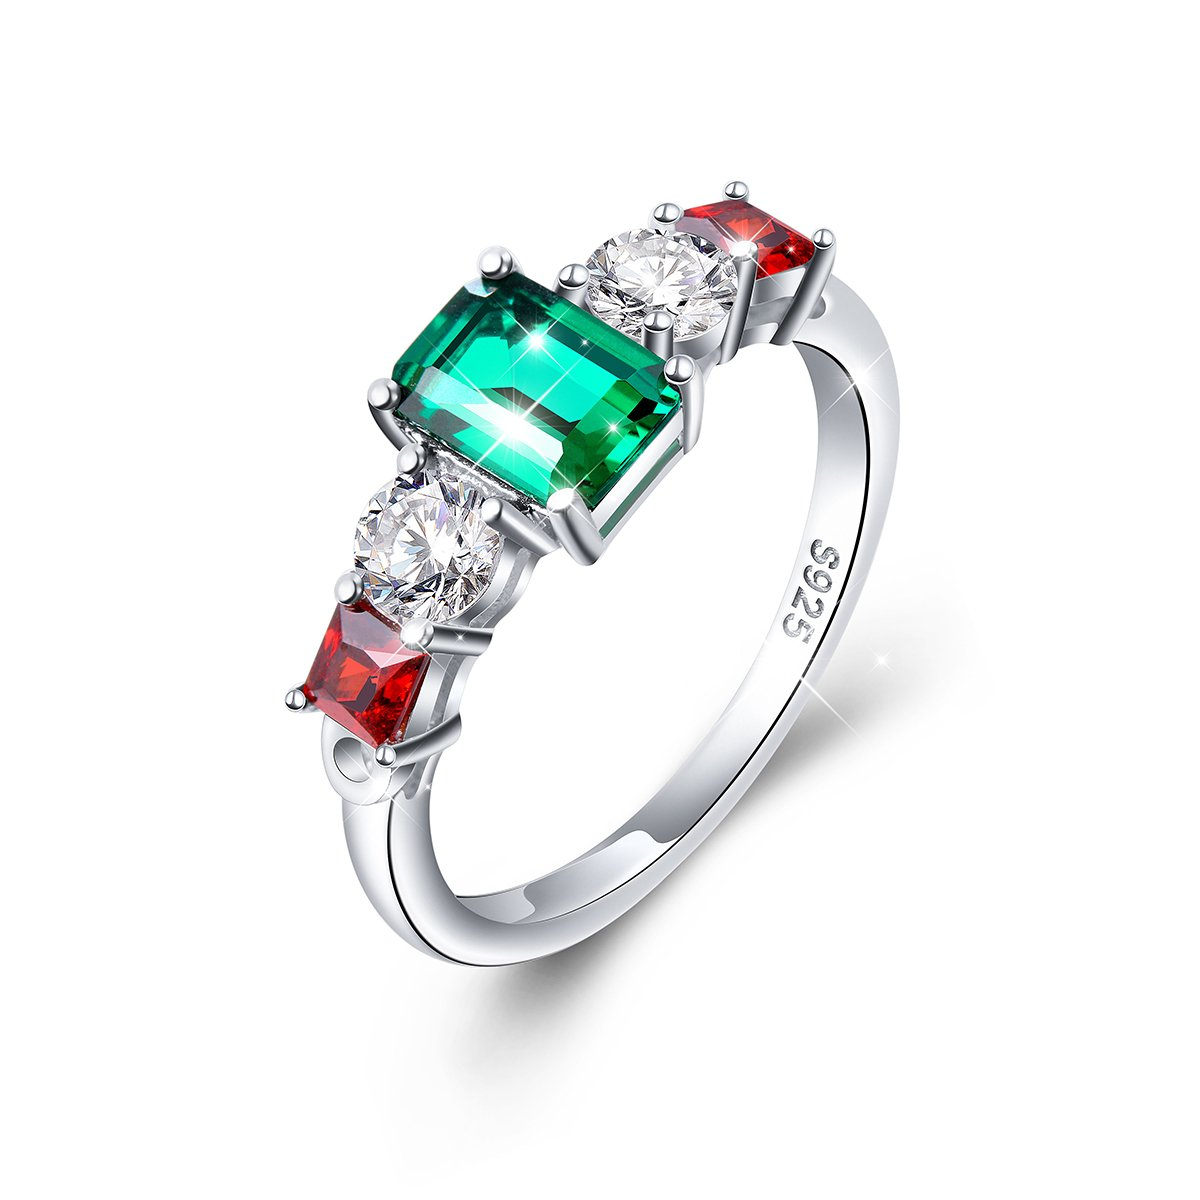 Vintage Elegant Jewelry 925 Sterling Silver Green and Red Cz Ring for Mom Size 9